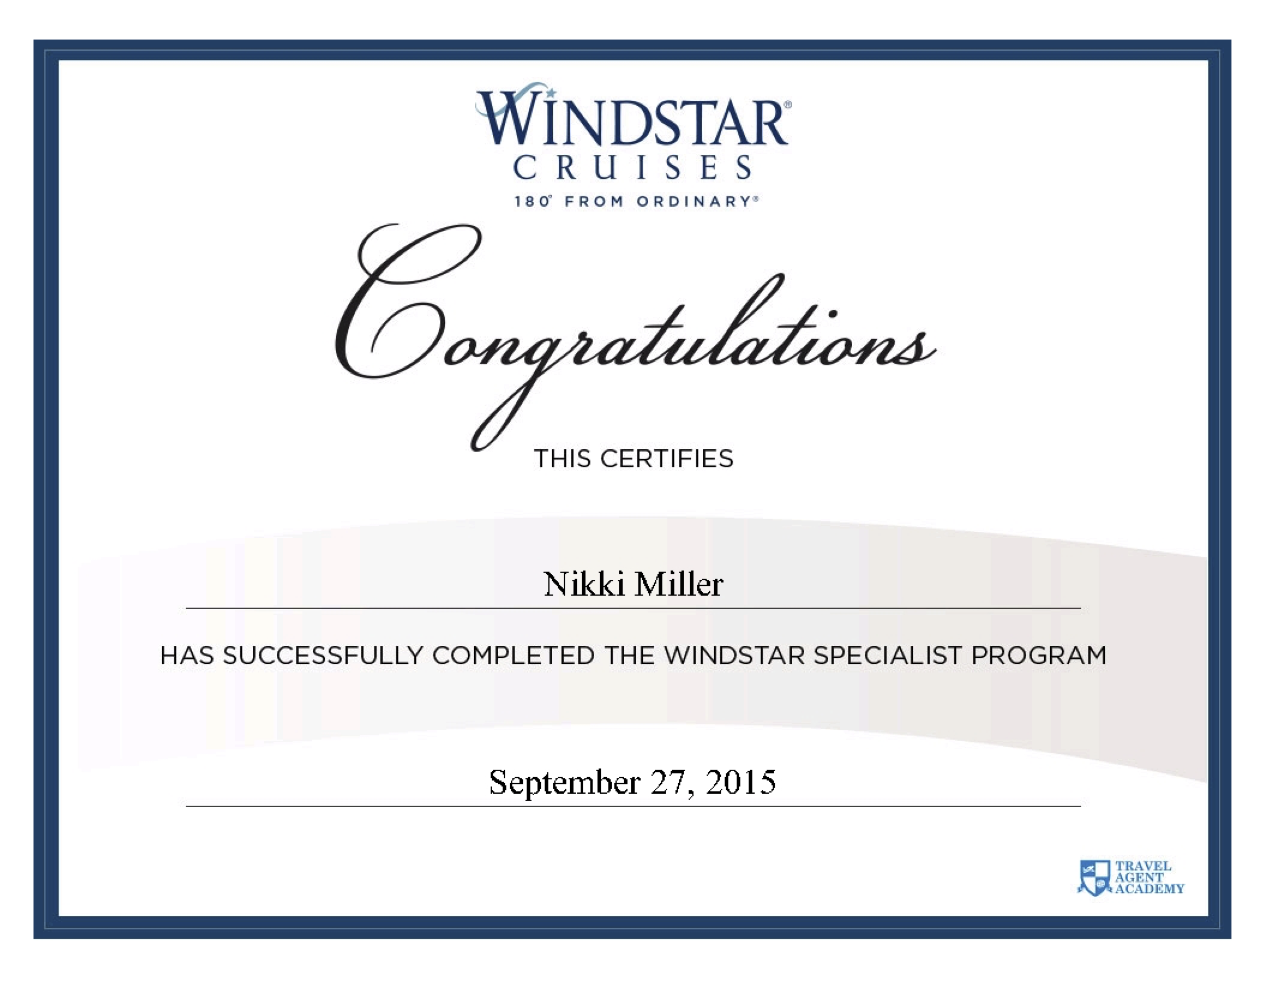 Windstar Cruises Certificate 2015.png